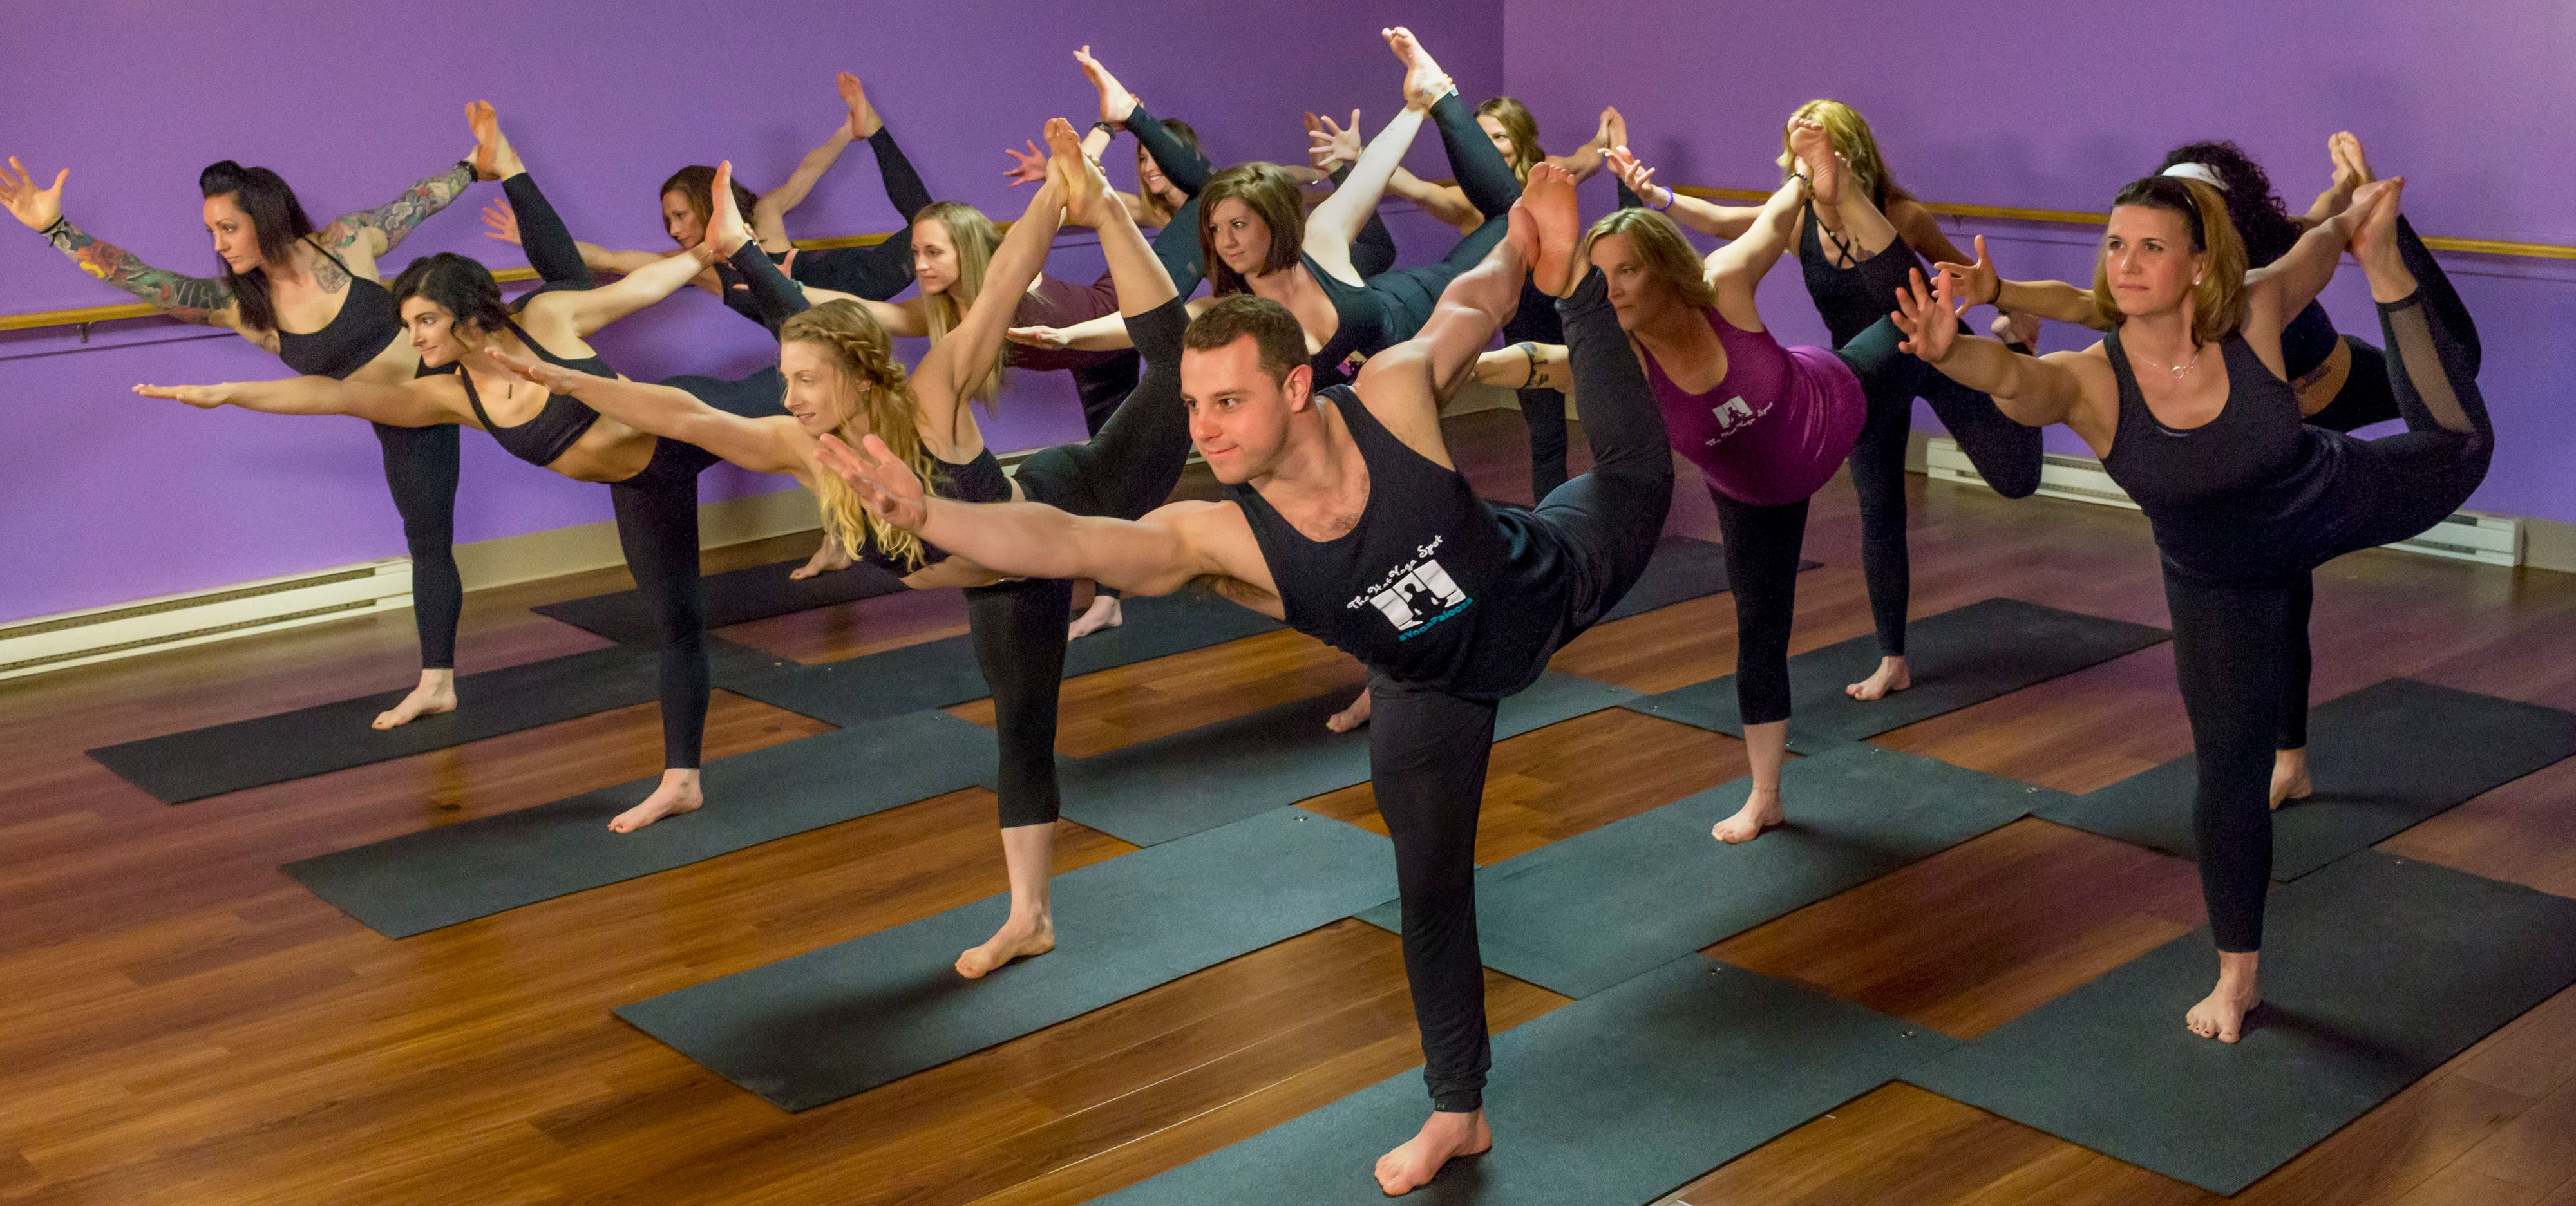 The Hot Yoga Spot Franchise